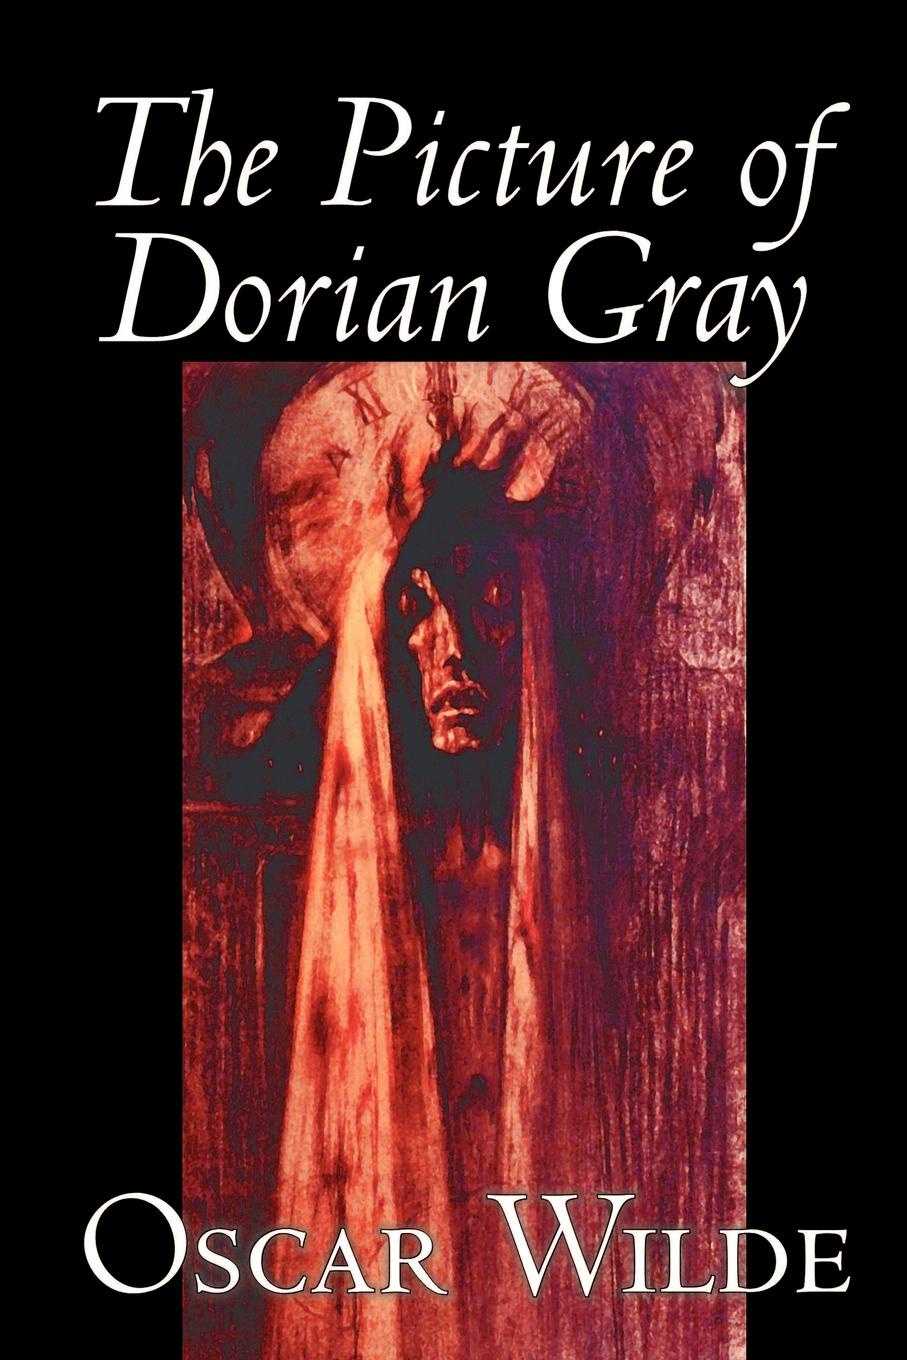 Oscar Wilde The Picture of Dorian Gray by Oscar Wilde, Fiction, Classics oscar wilde the ballad of reading gaol a poetry